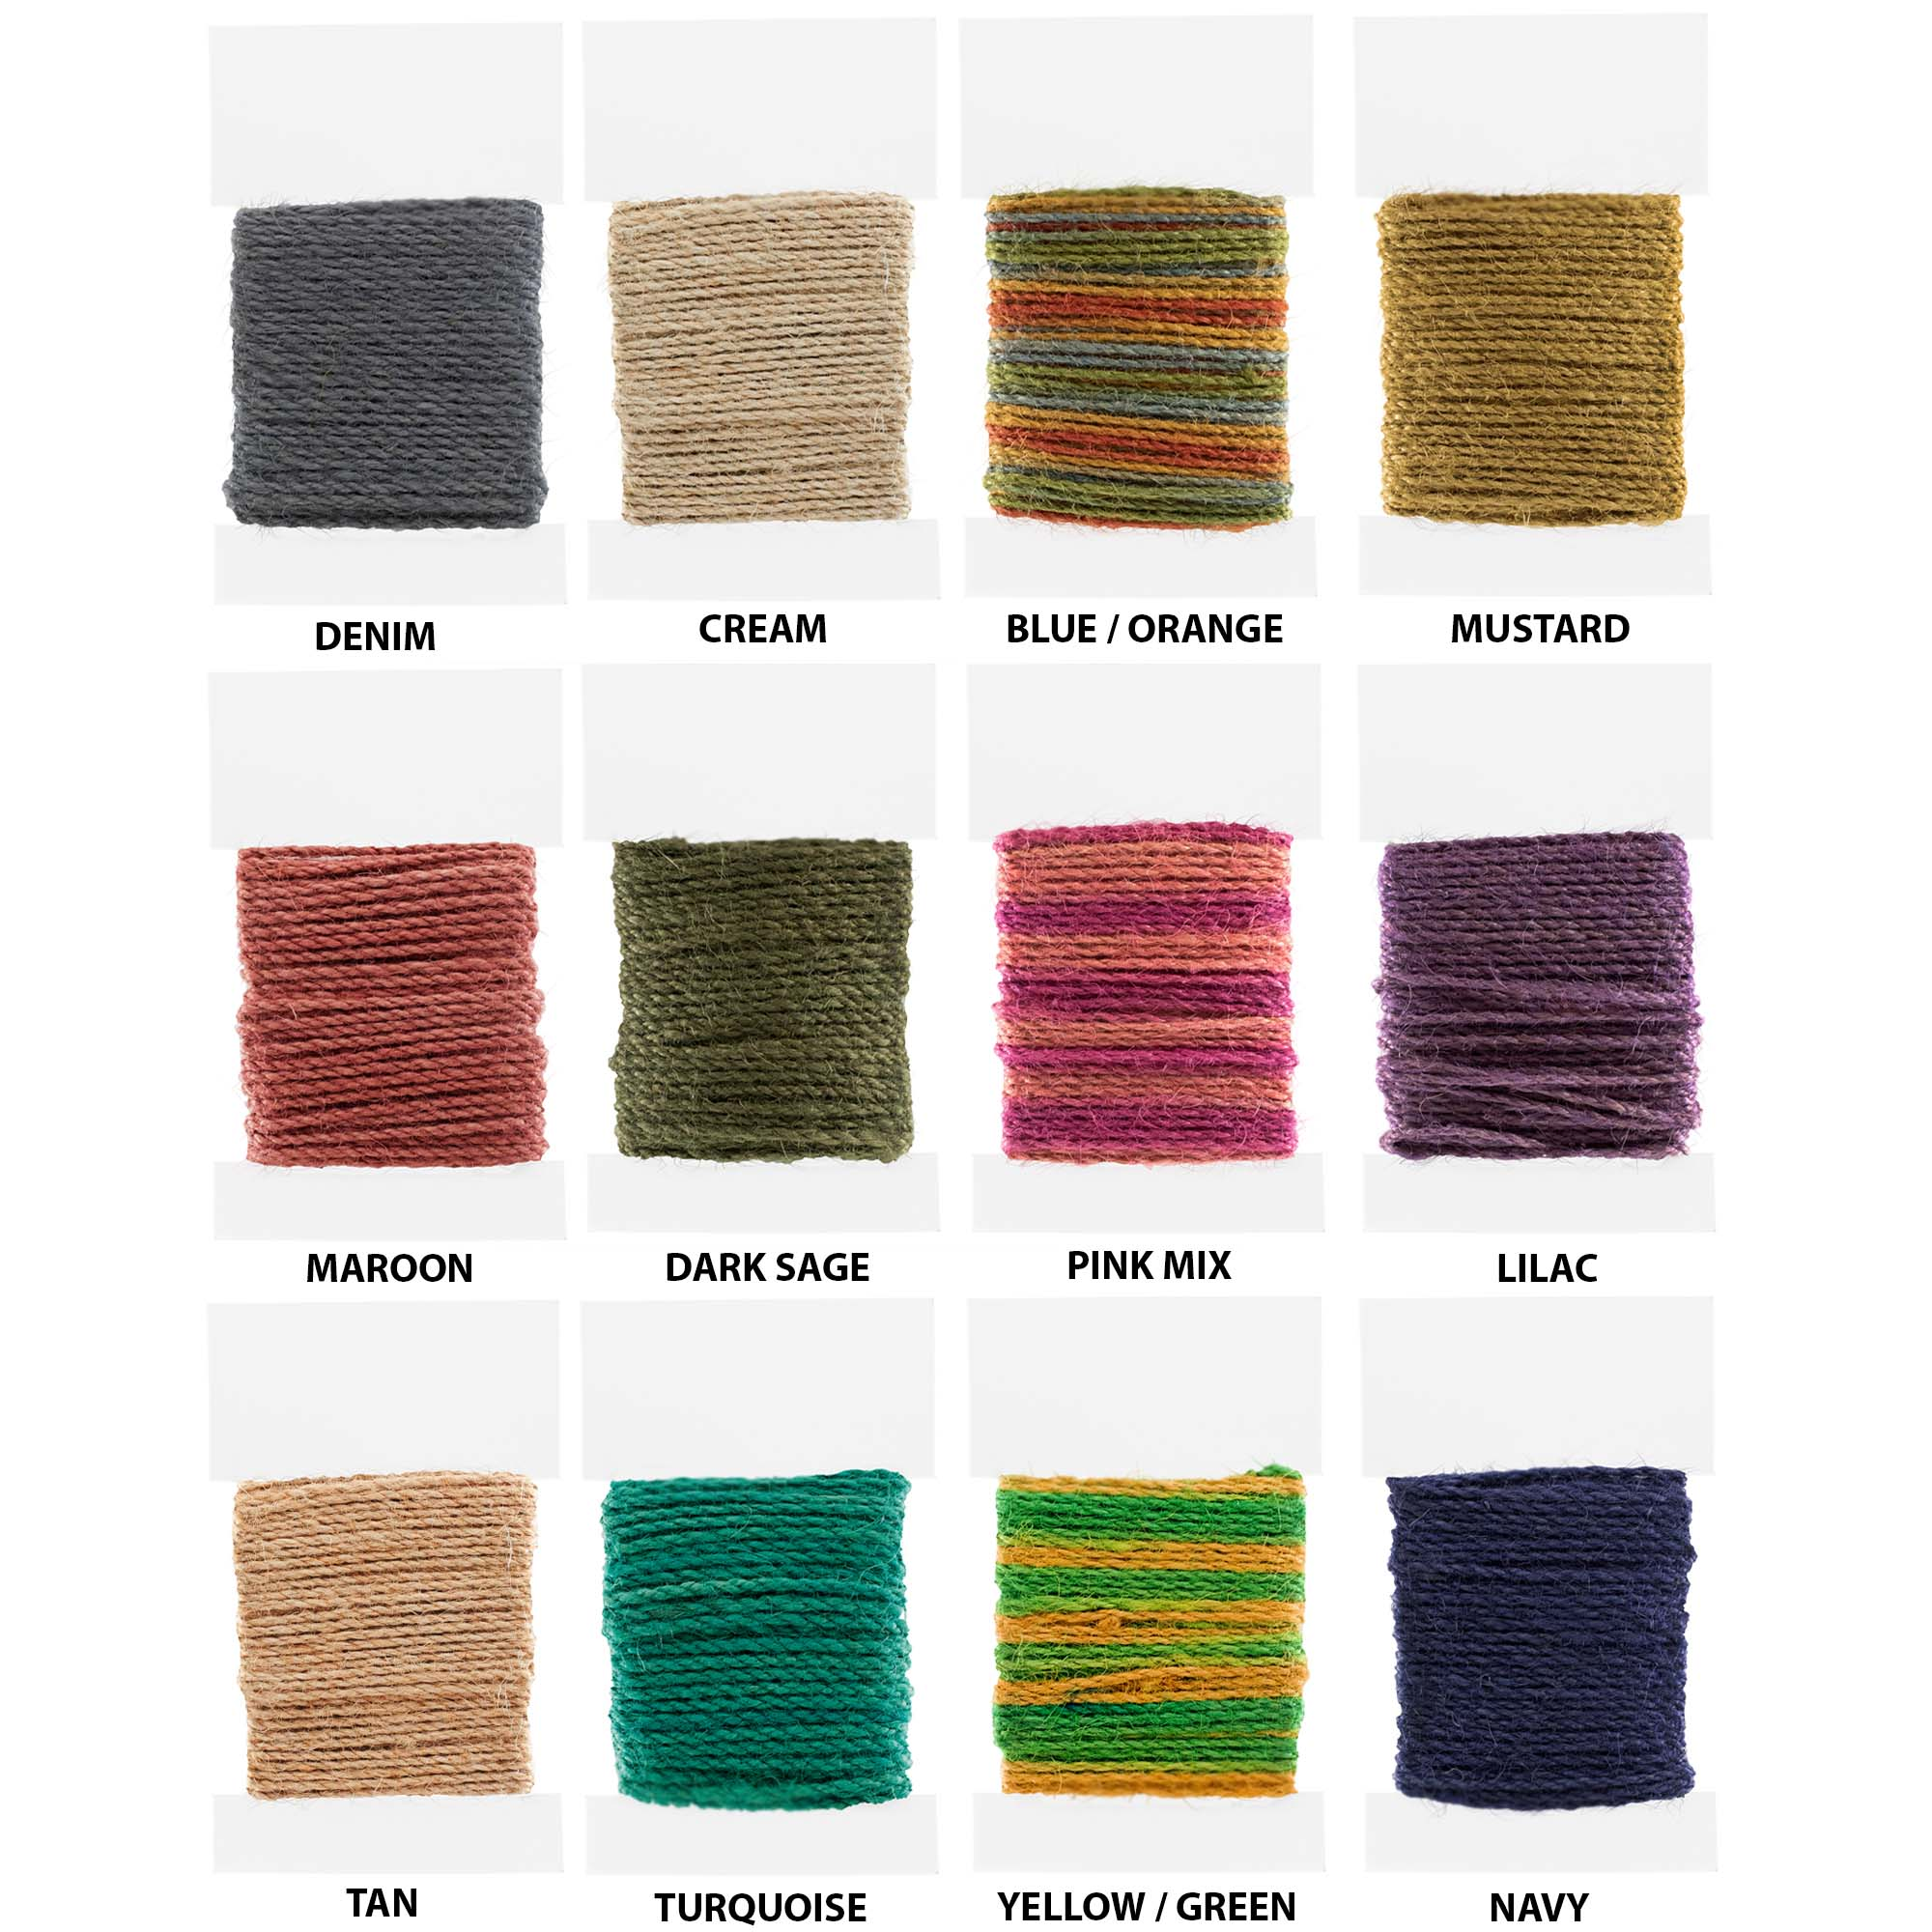 Craft County - 2 mm Jute Cord Packs - 10 Meter Spools - Several Color Options - Available in 5 or 10 Packs